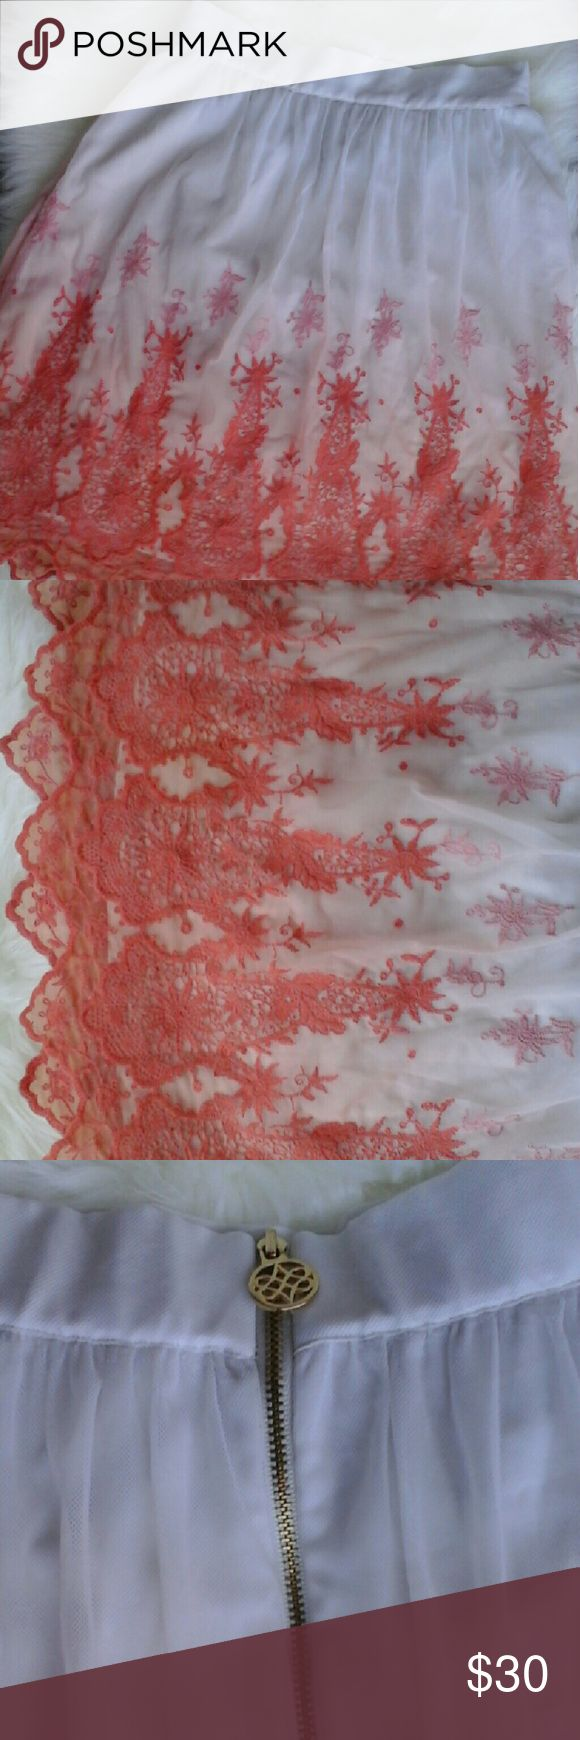 Antonio Melani Skirt Super chic white and coral skirt...tags were removed but it has never been worn! ANTONIO MELANI Skirts